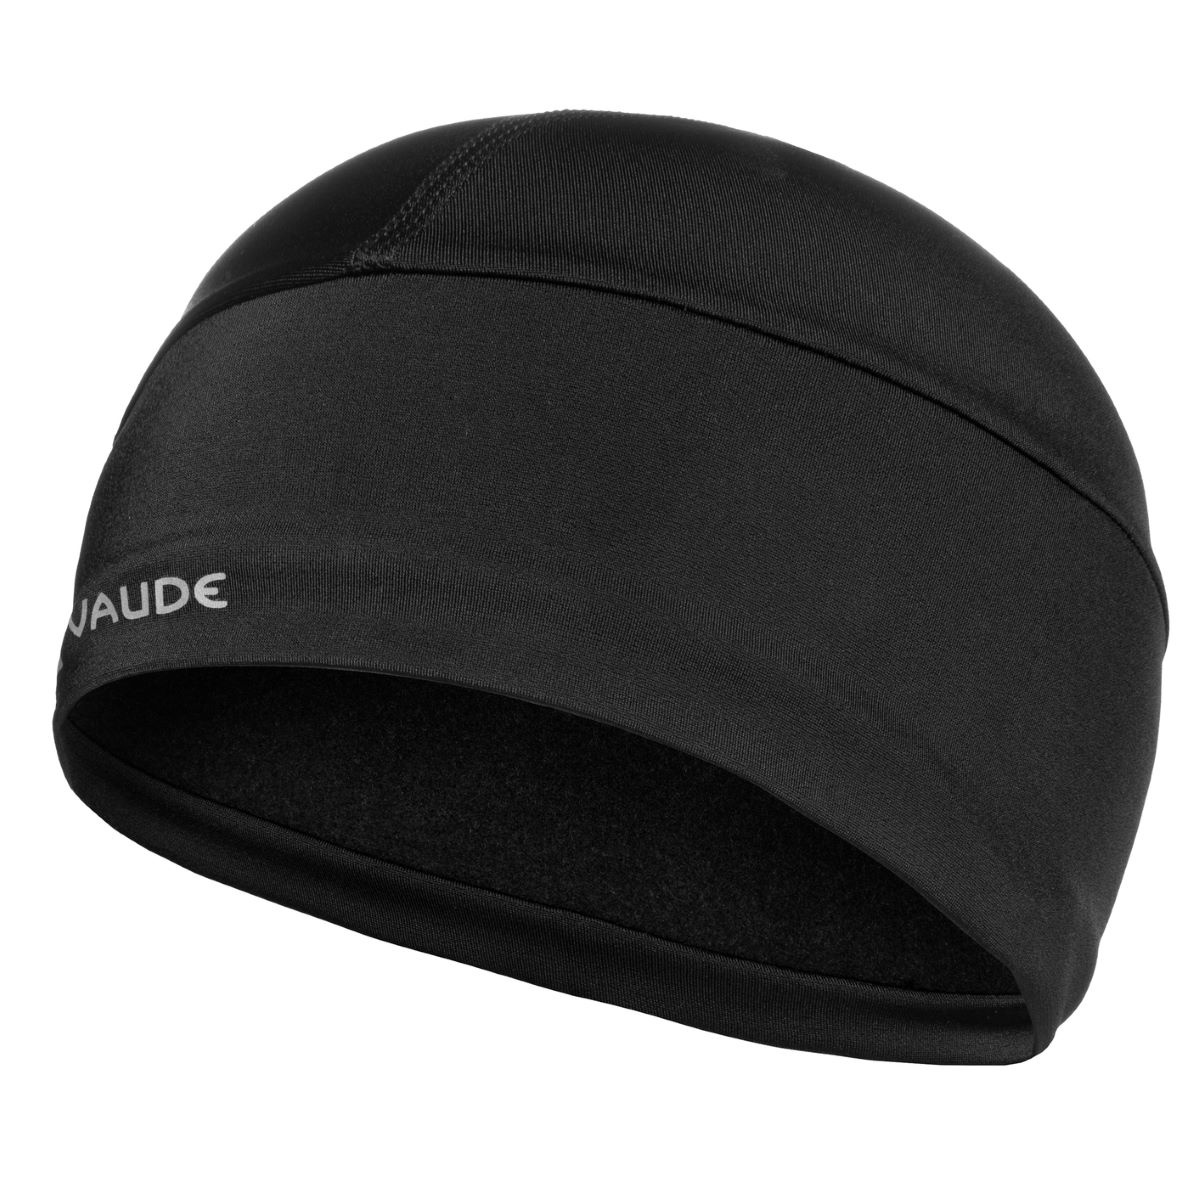 Vaude Bike Race Cap - Gorros sotocasco